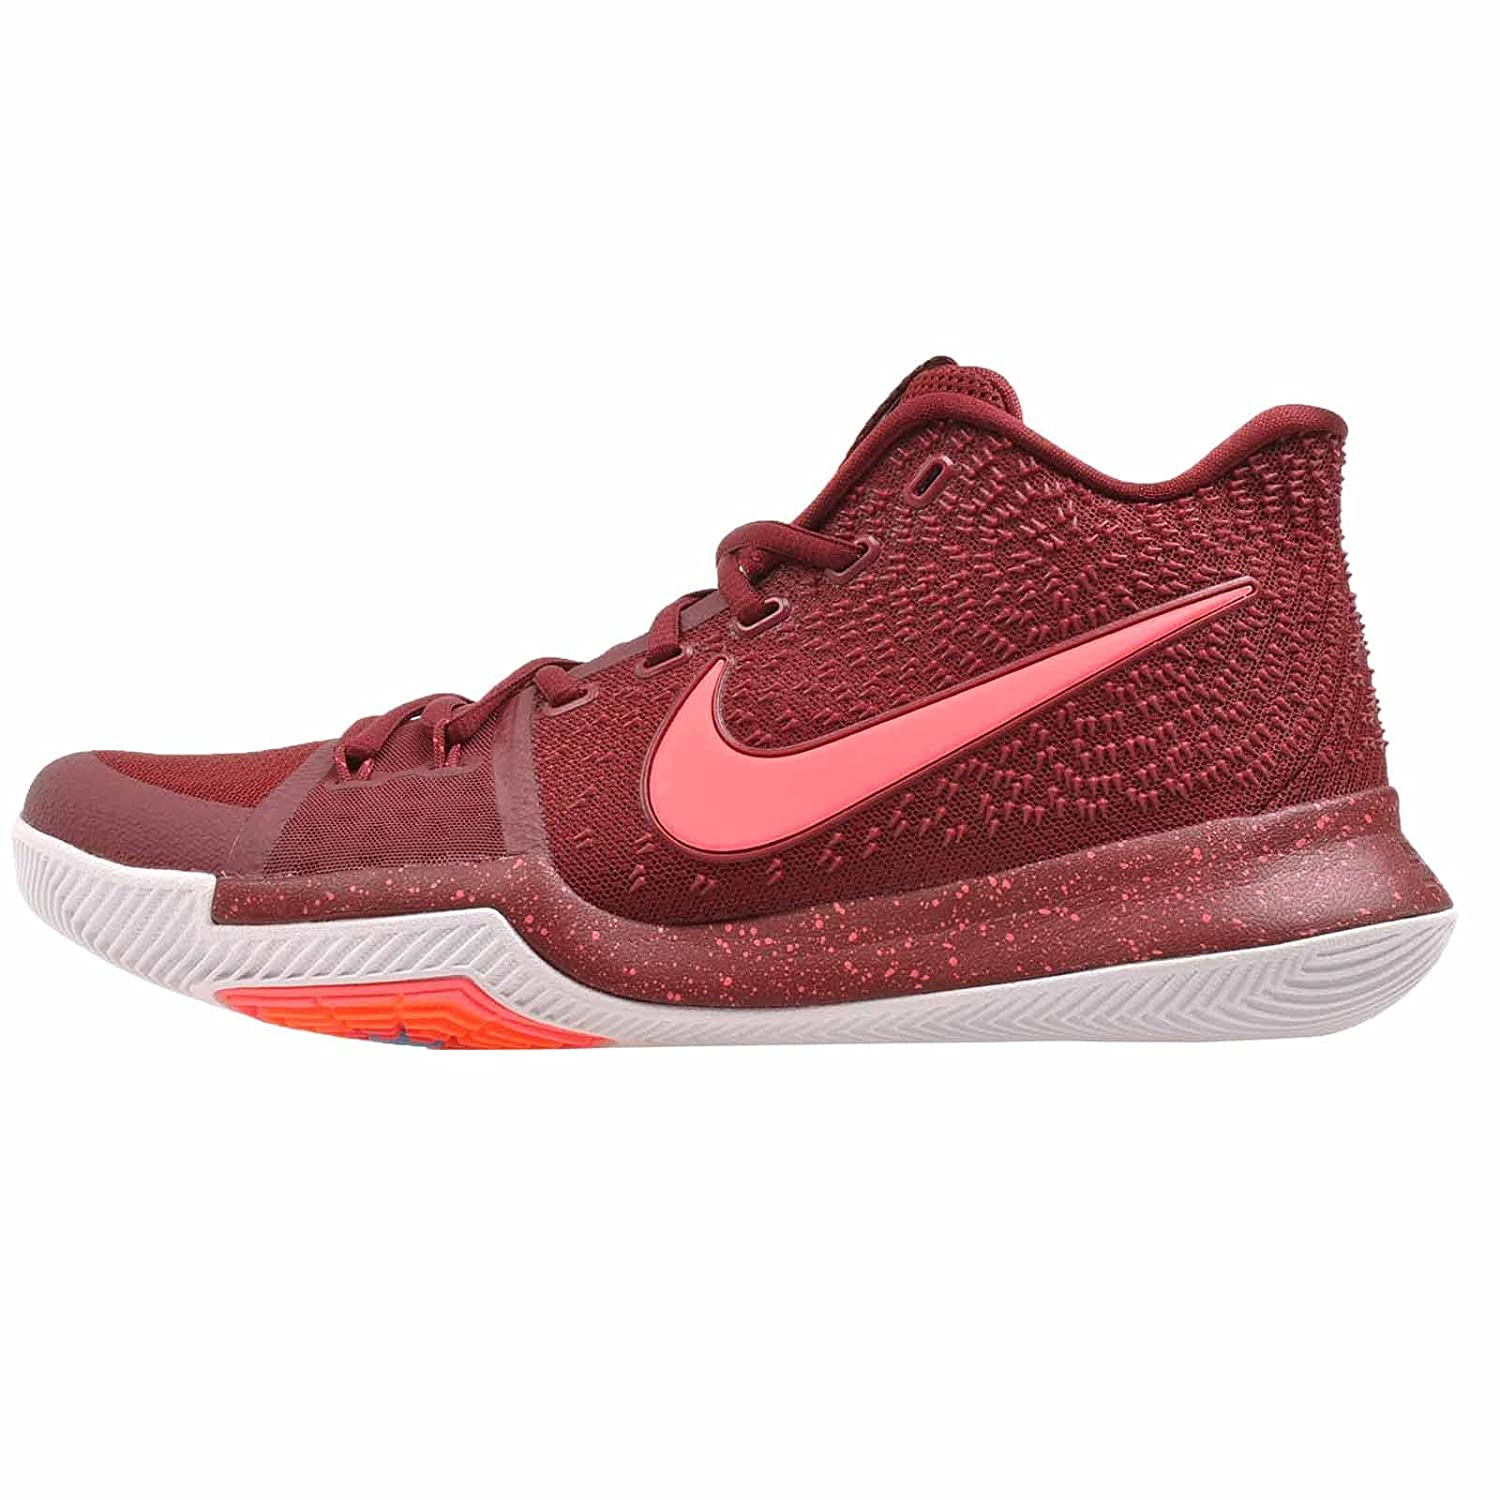 new styles f7f46 d5abc Amazon.com   Nike Mens Kyrie 3 Midnight Basketball Shoes   Basketball